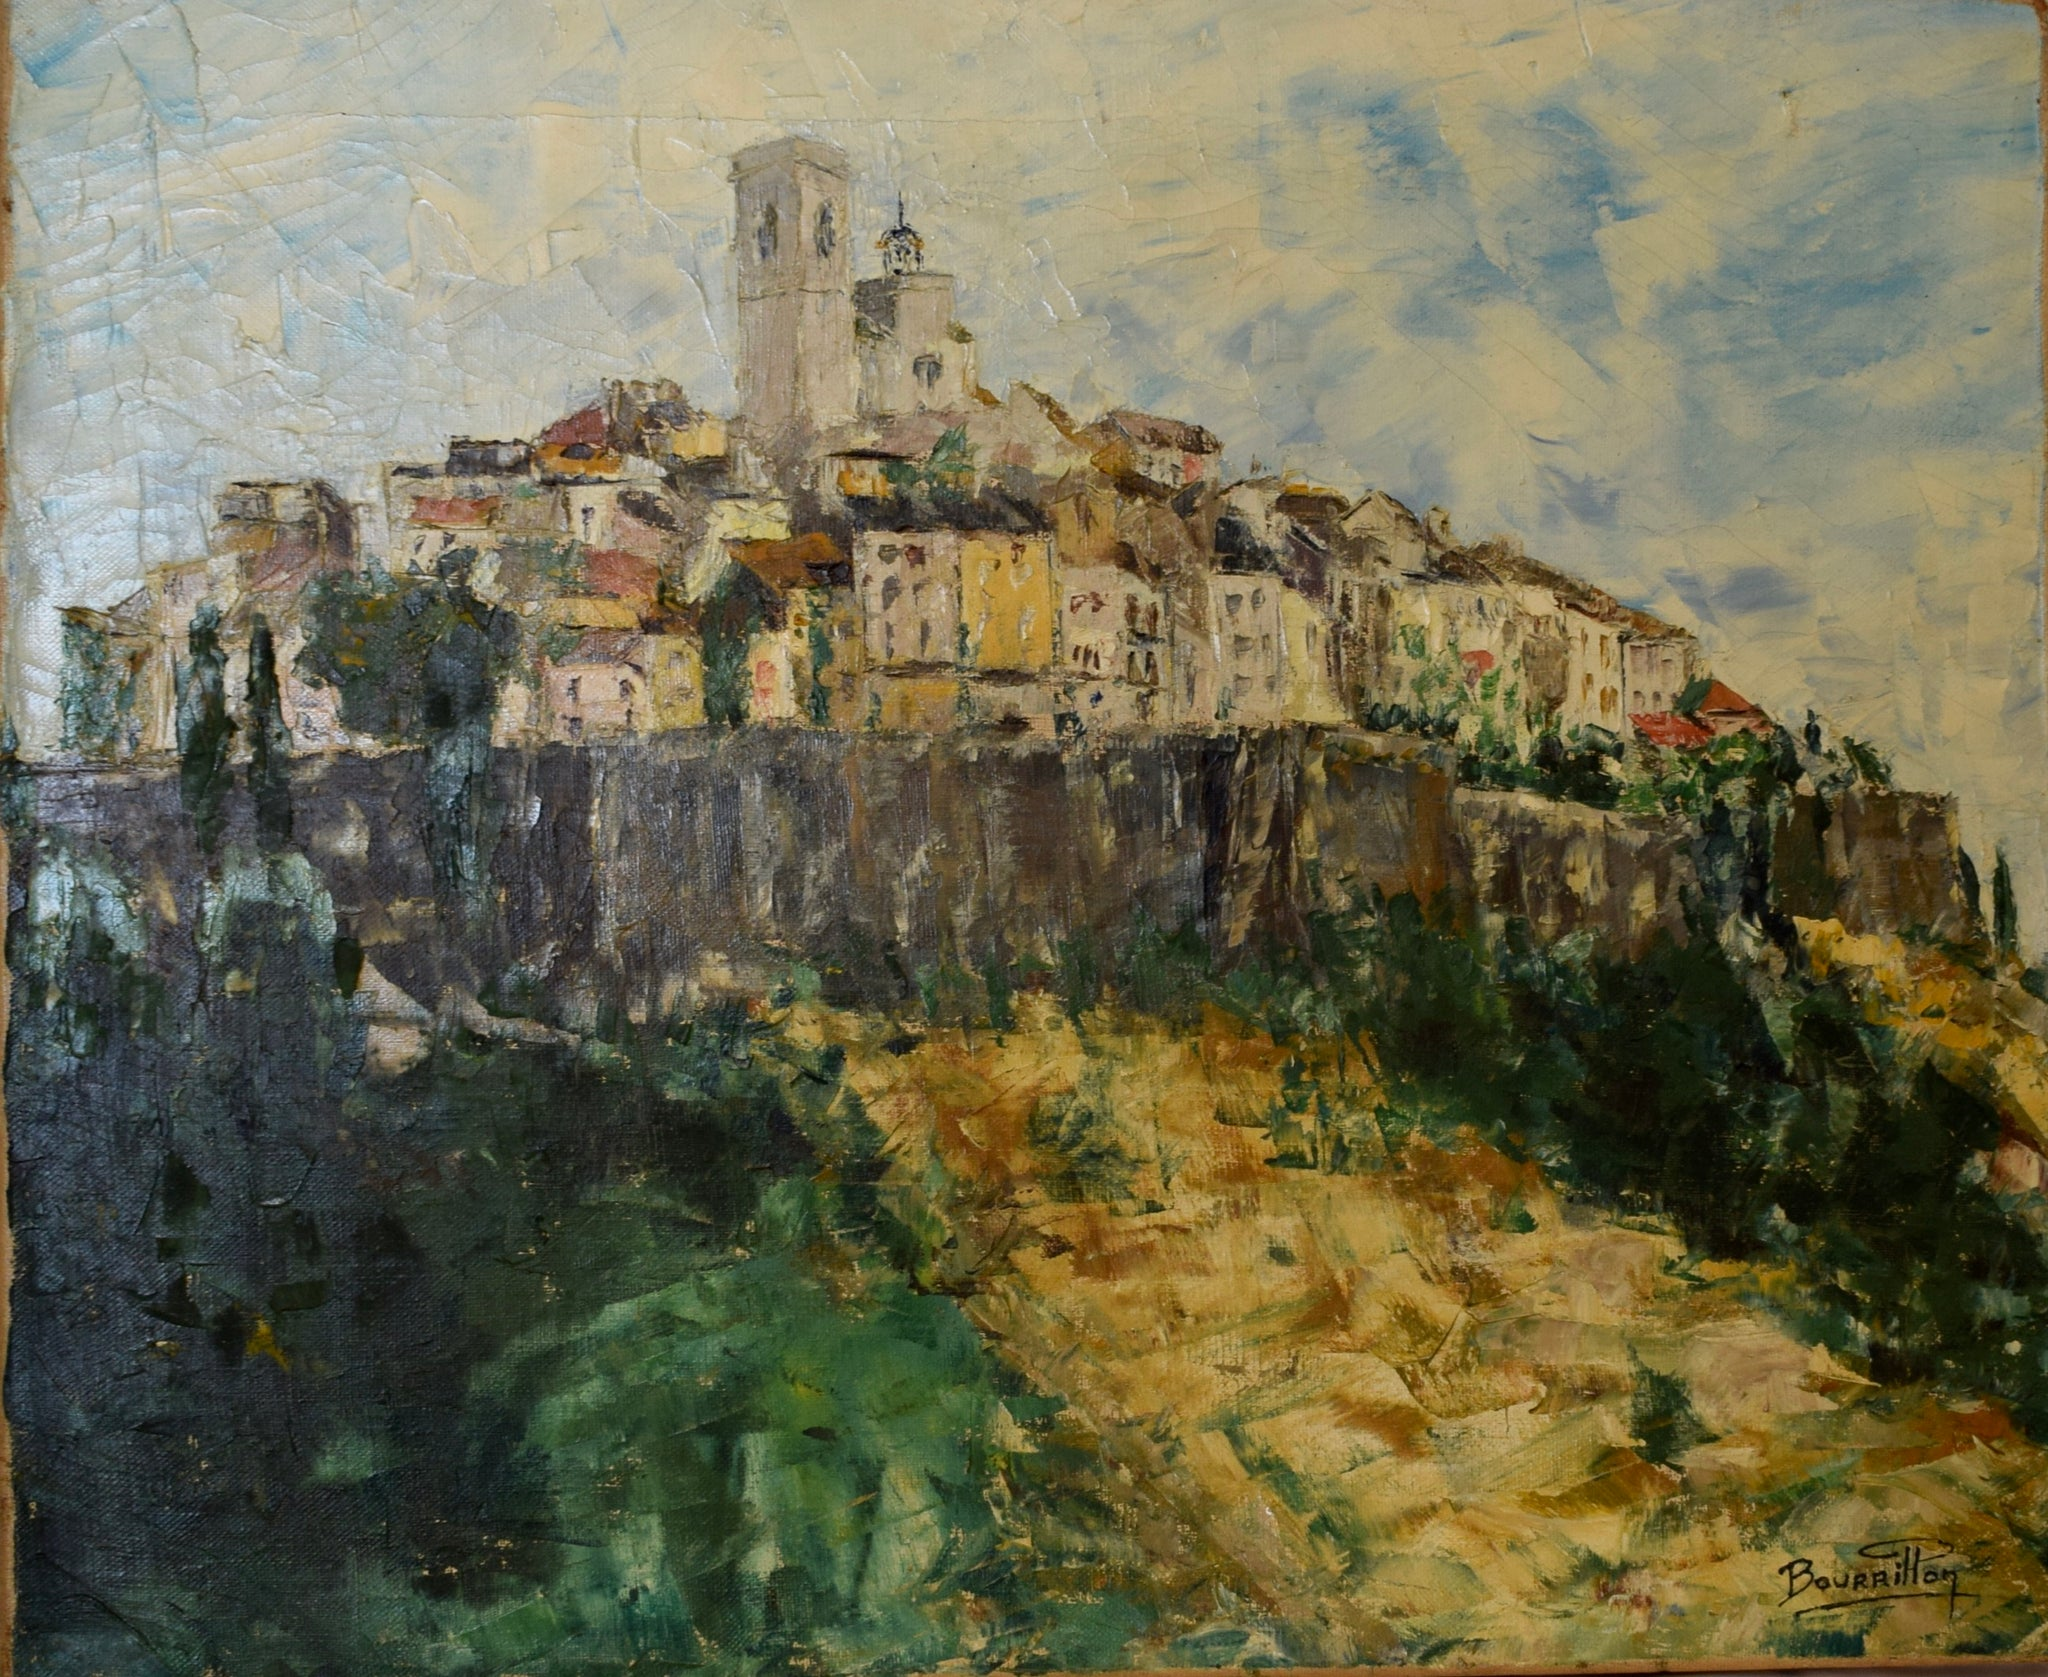 Impressionist Style French Oil Painting on Canvas Saint Paul de Vence Town Signed Bourrillon  - French Town City Village